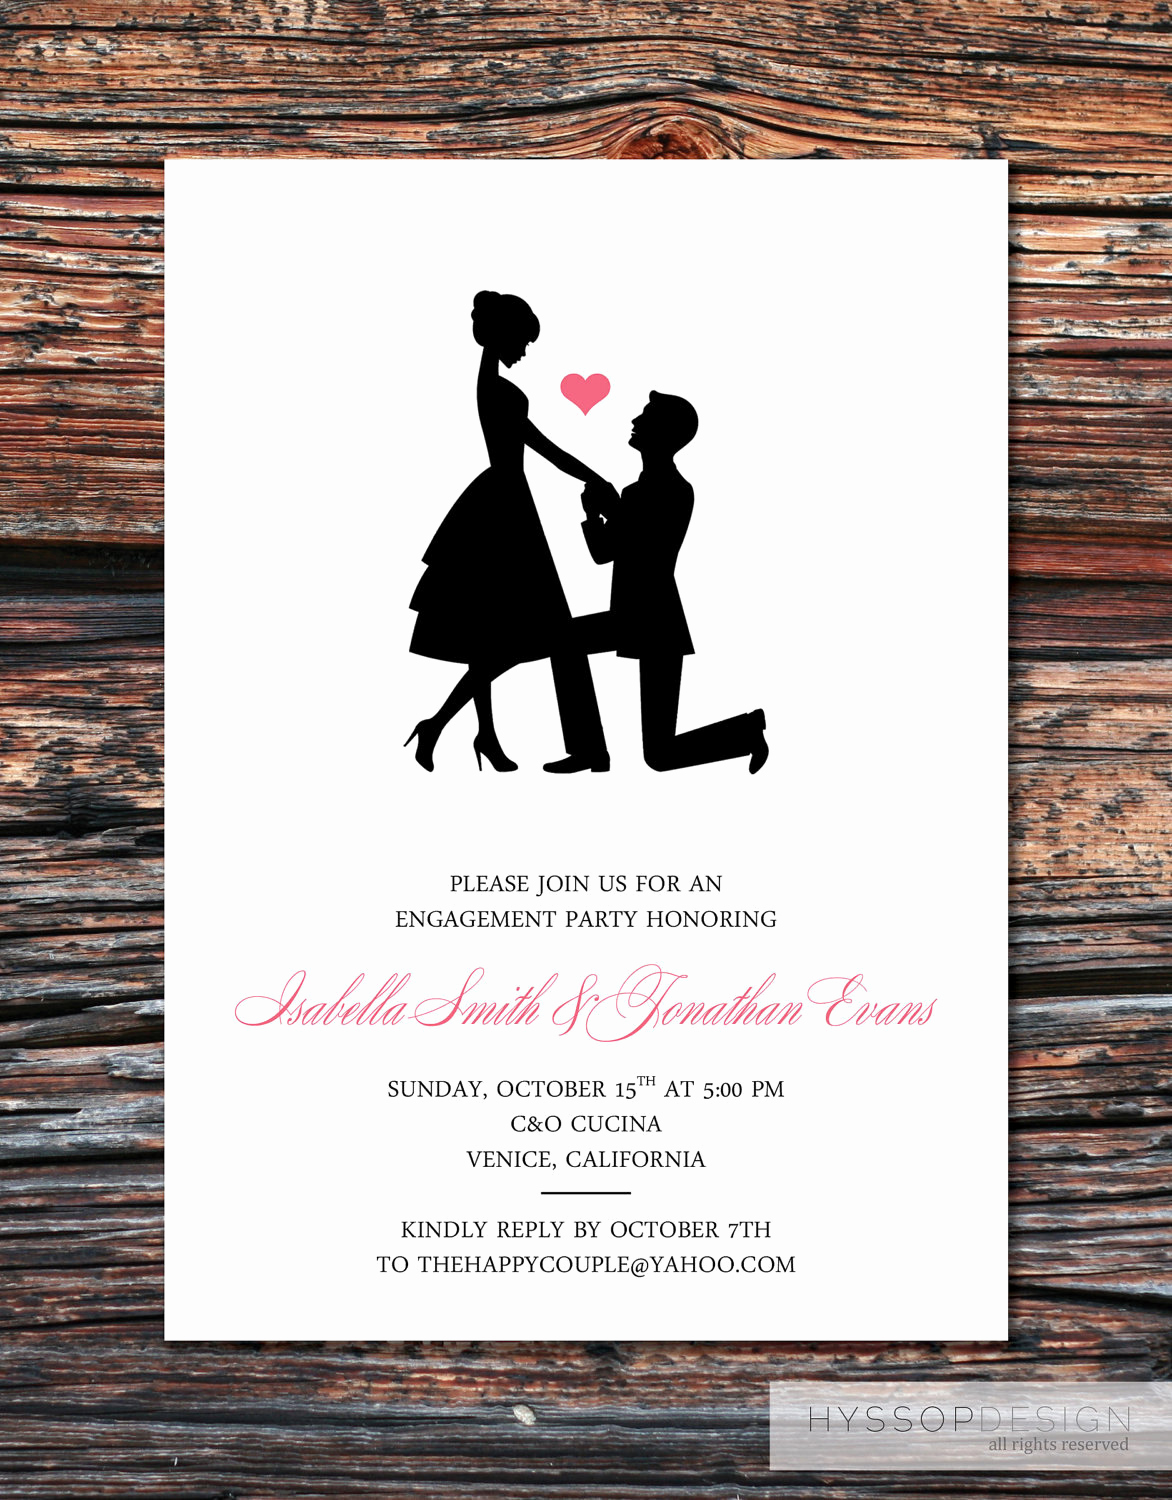 Invitation to Bid Template Elegant Printable Diy Sweet Silhouette Proposal by Hyssopdesign On